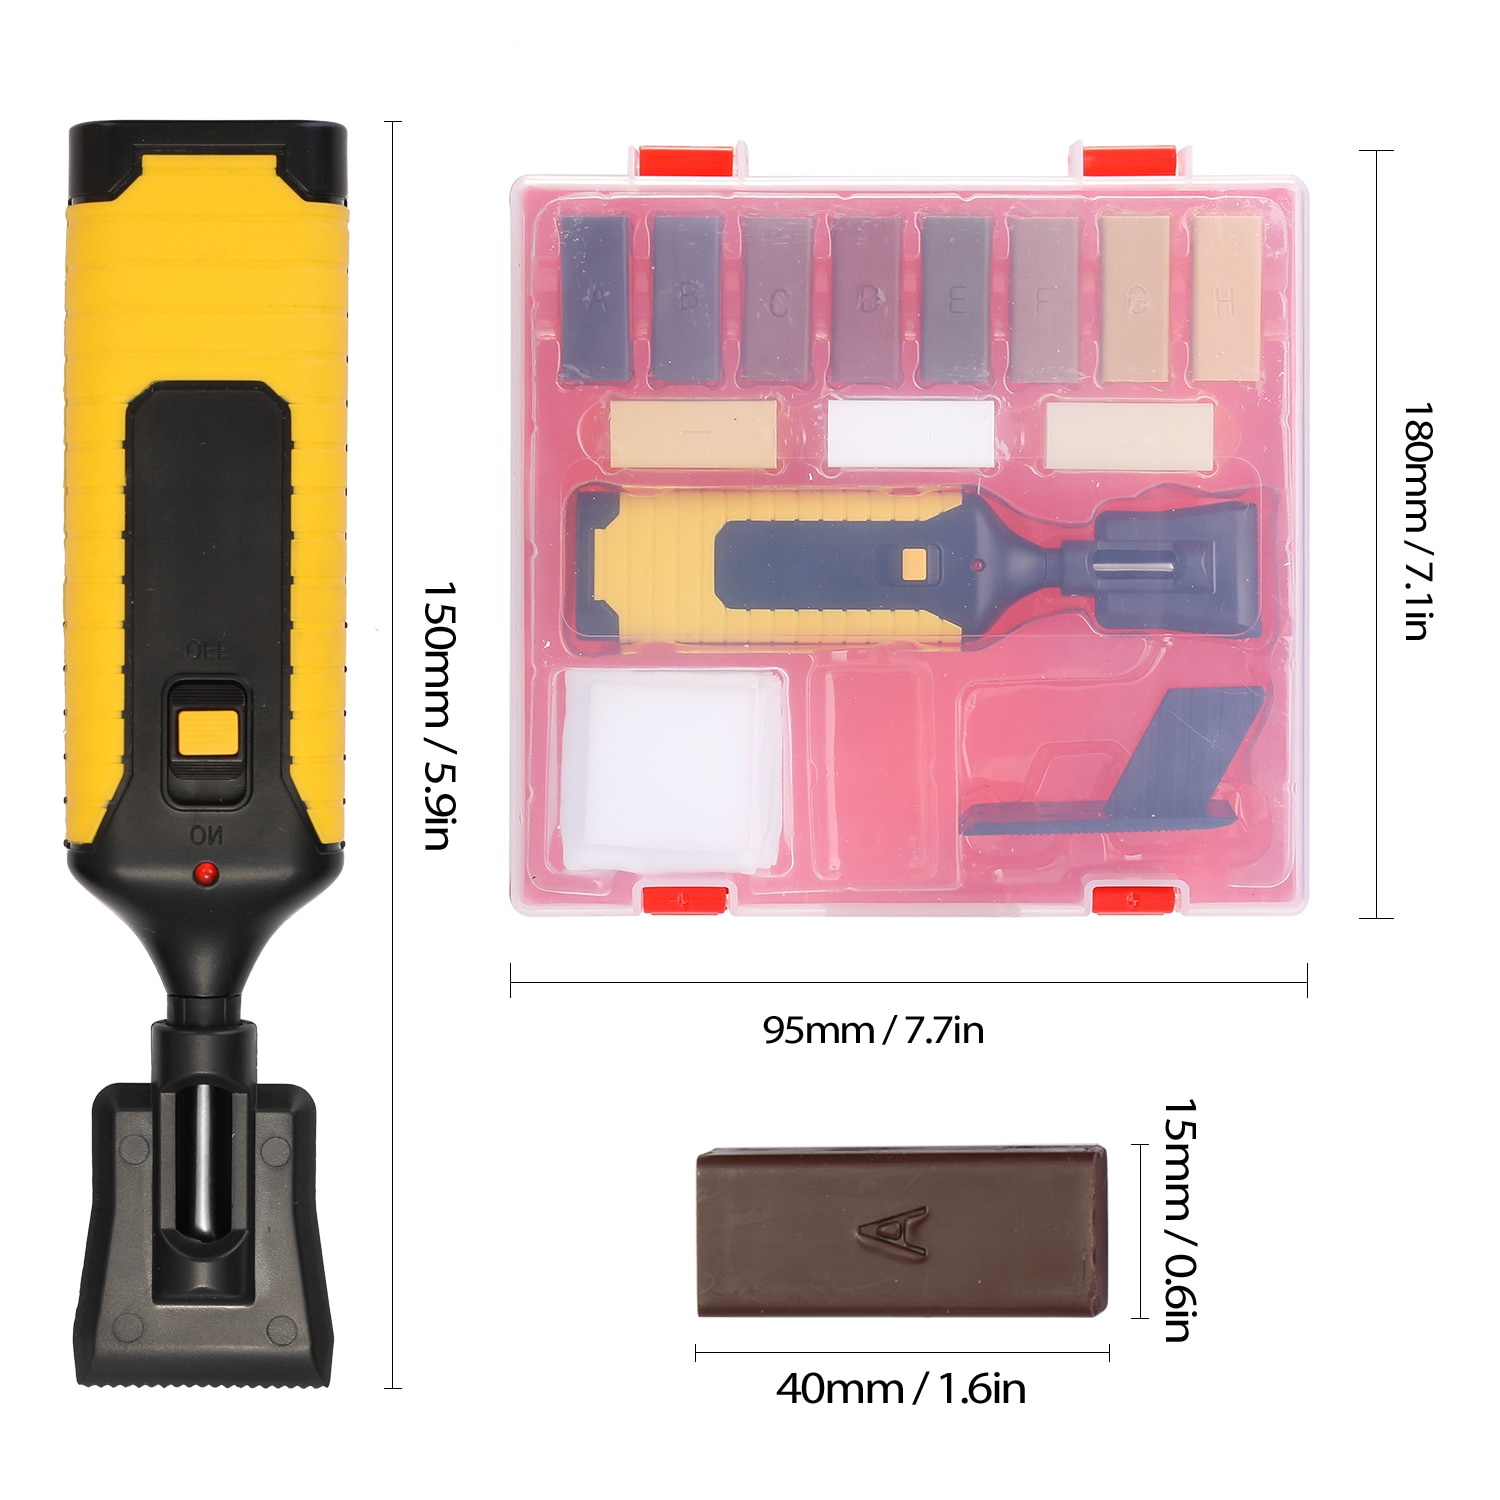 Laminate Repairing Kit Wax System Floor Worktop Sturdy Casing Chips Scratches Mending Tool Set For Use In The Home, Caravan  - buy with discount